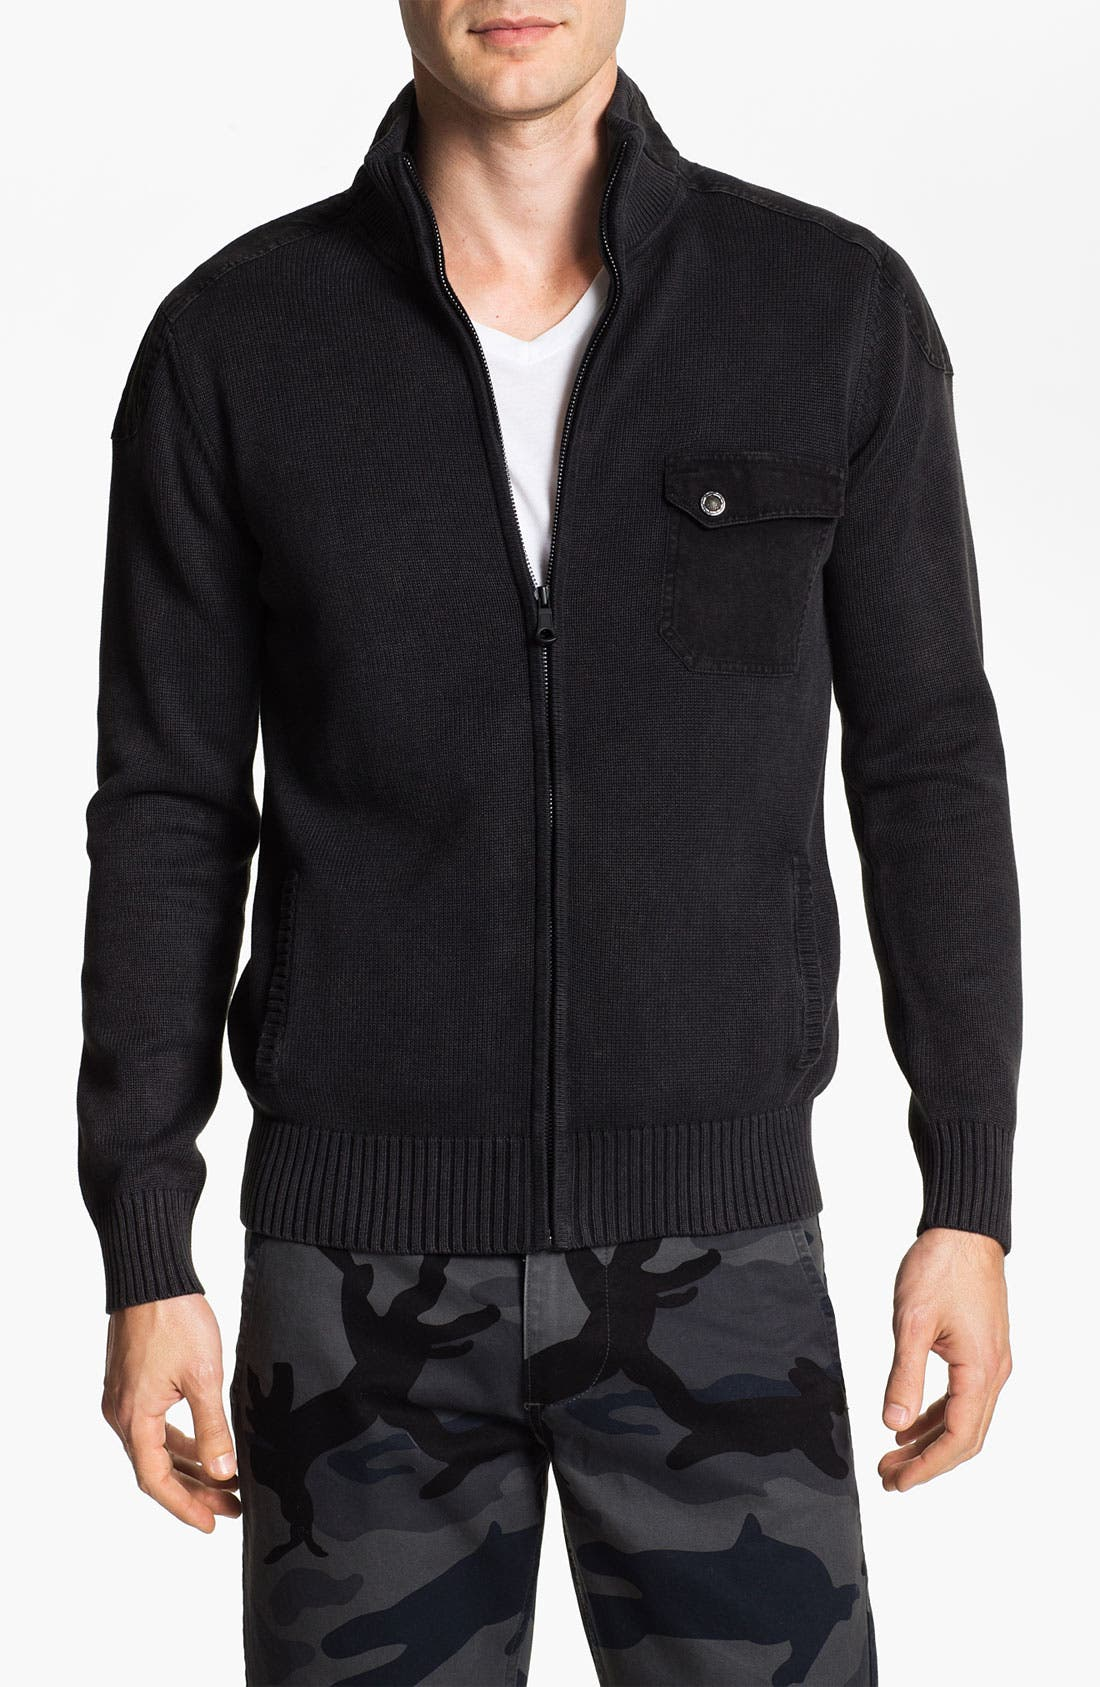 Main Image - R44 Rogan Standard Issue 'Triumph' Organic Cotton Zip Cardigan